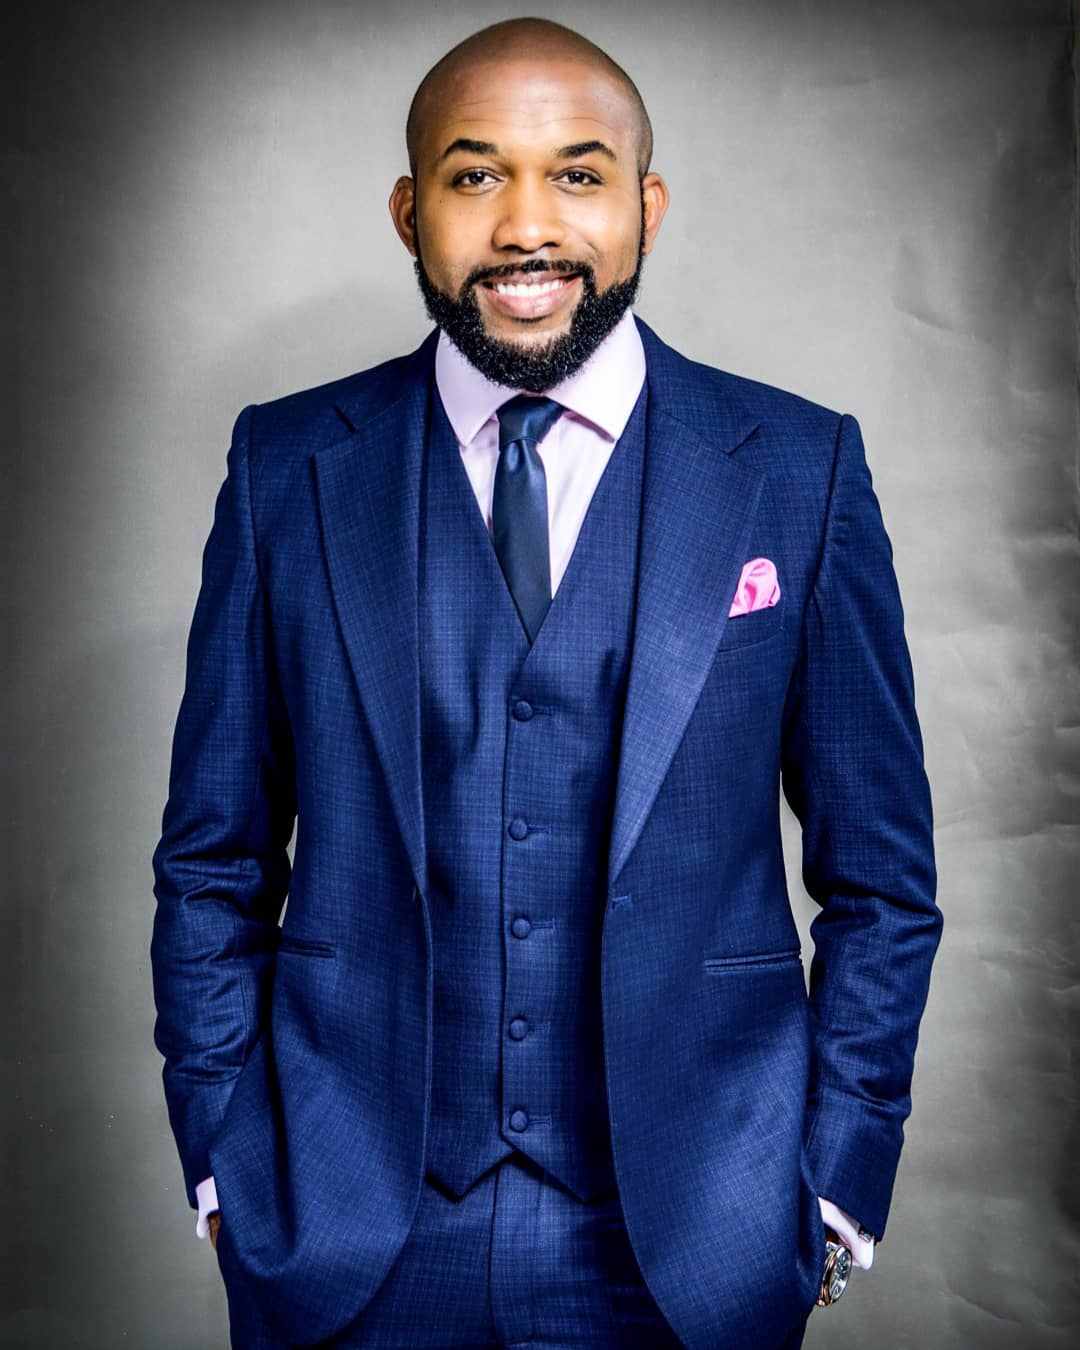 Banky W moved to Nigeria in 2008 with the aim of promoting African music to the world